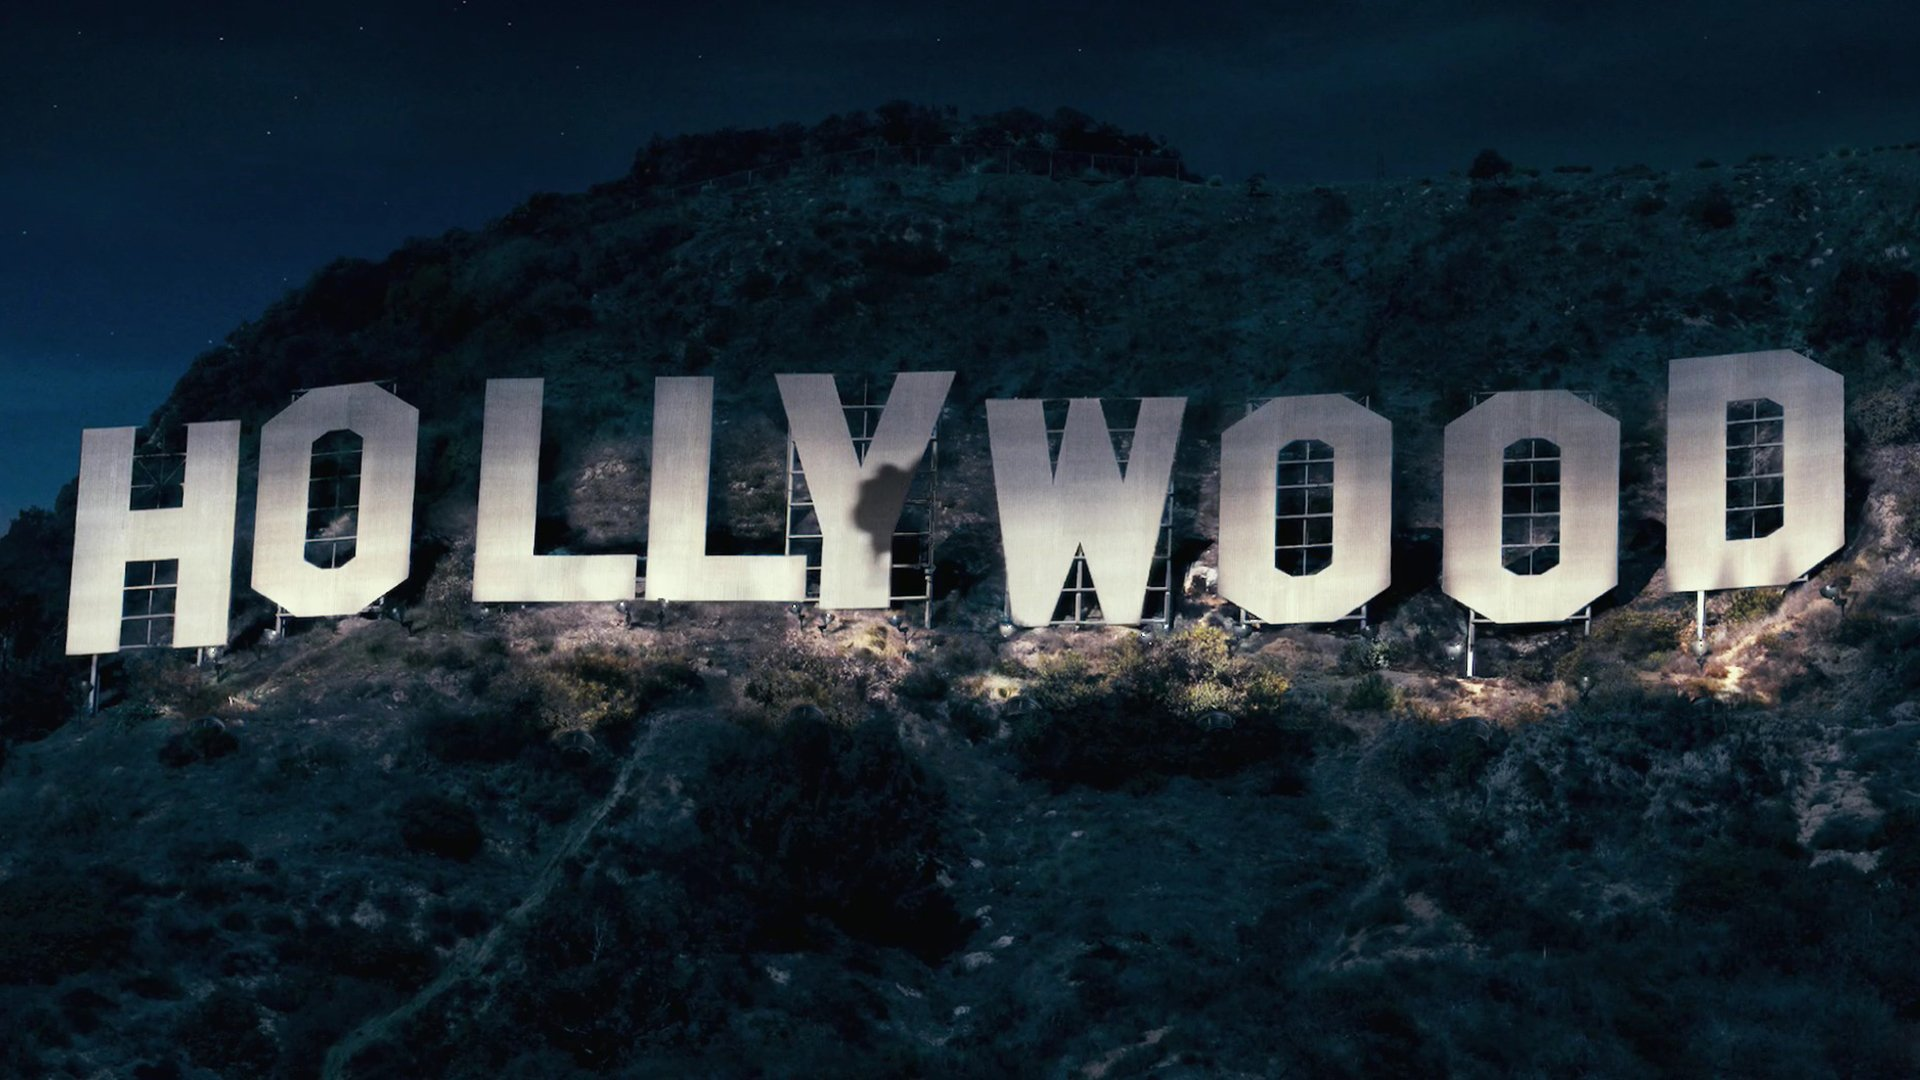 Hollywood sign in Hop wallpaper   549053 1920x1080